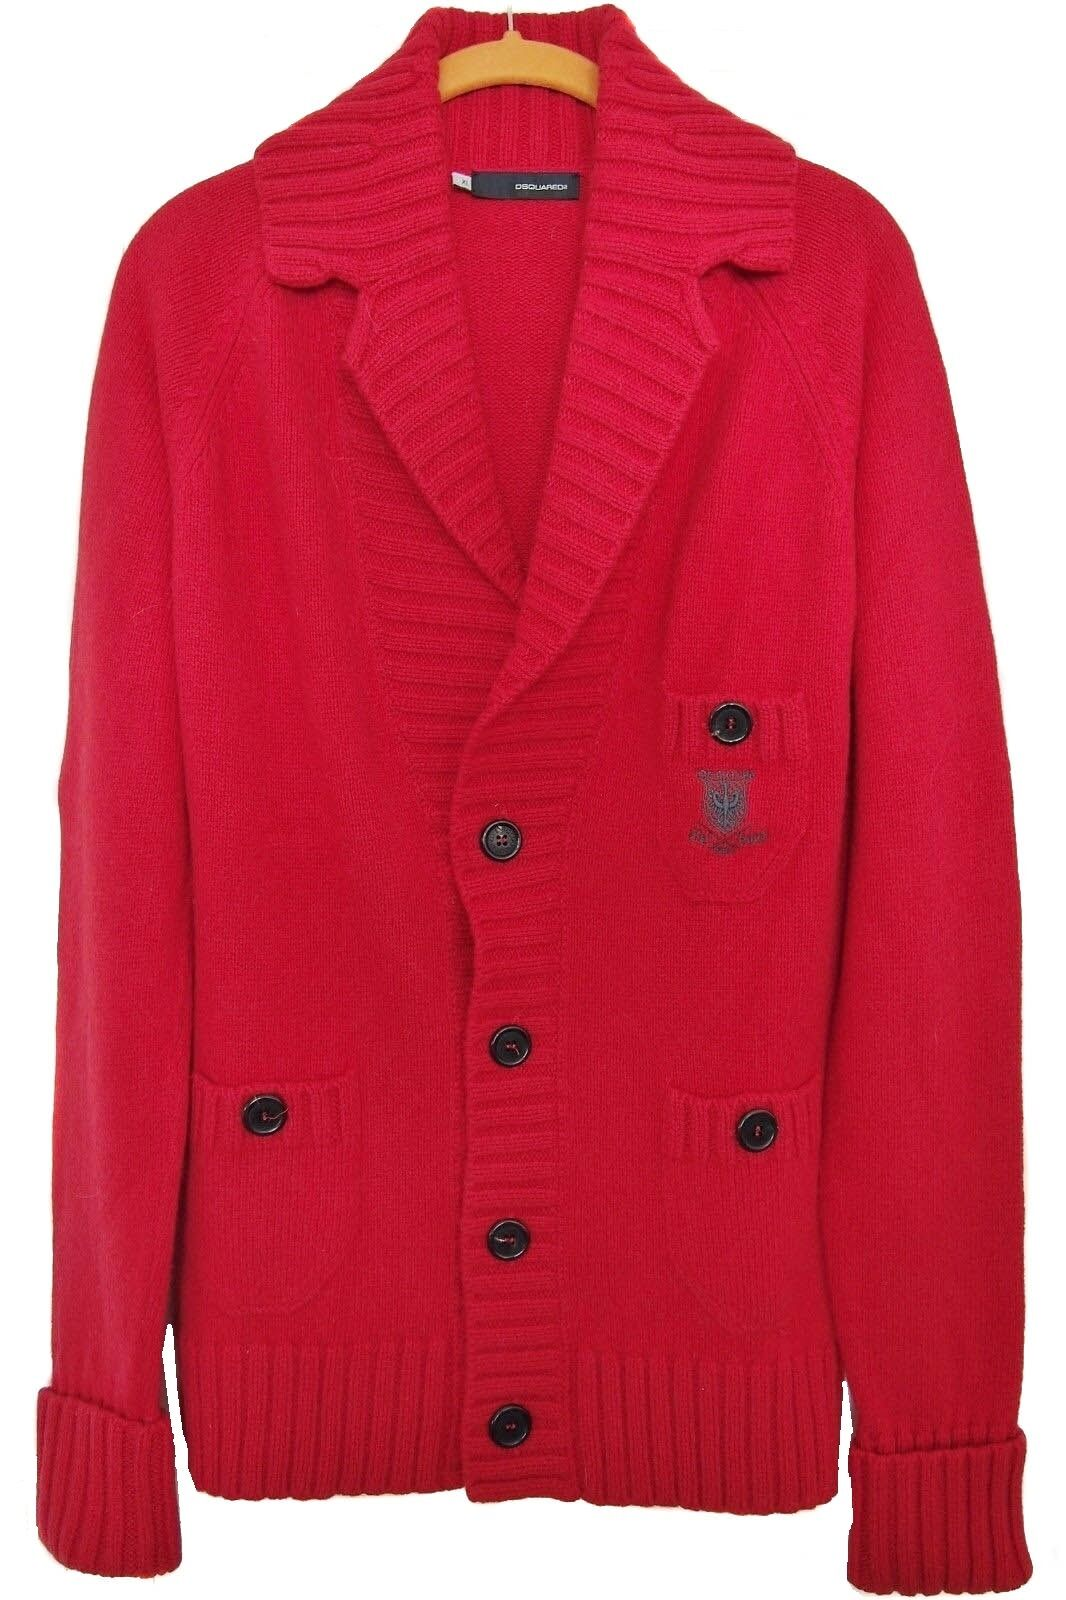 DSQUARED2 Cardigan Cashmere Wool Red Size XL